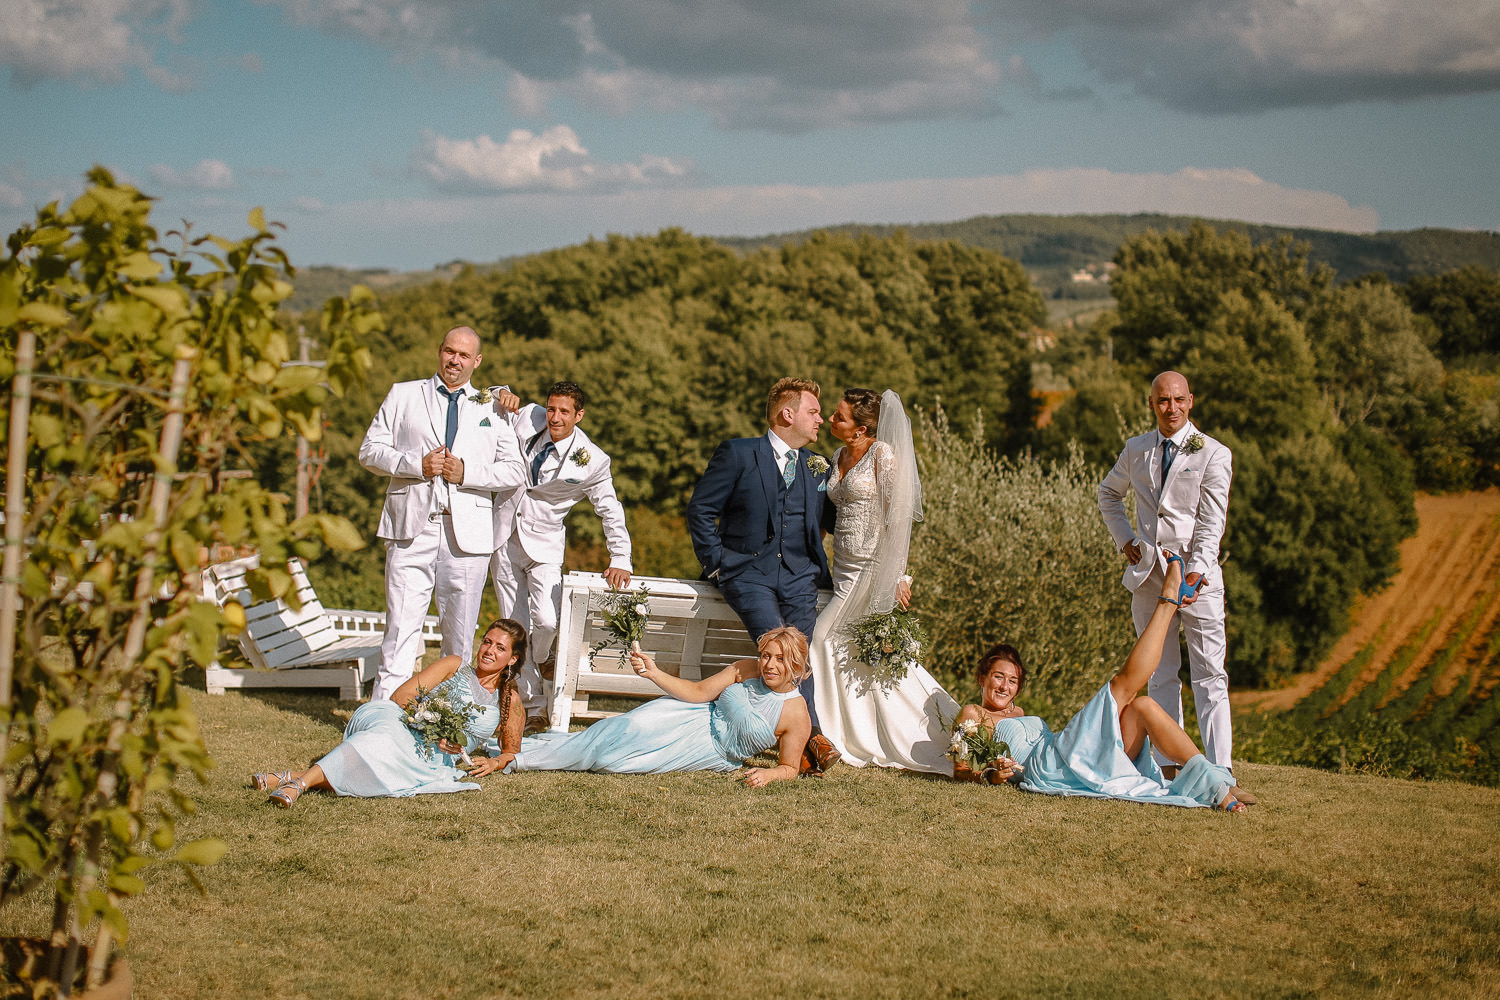 bridal party picture Wedding ceremony photography Fattoria la Loggia Tuscany